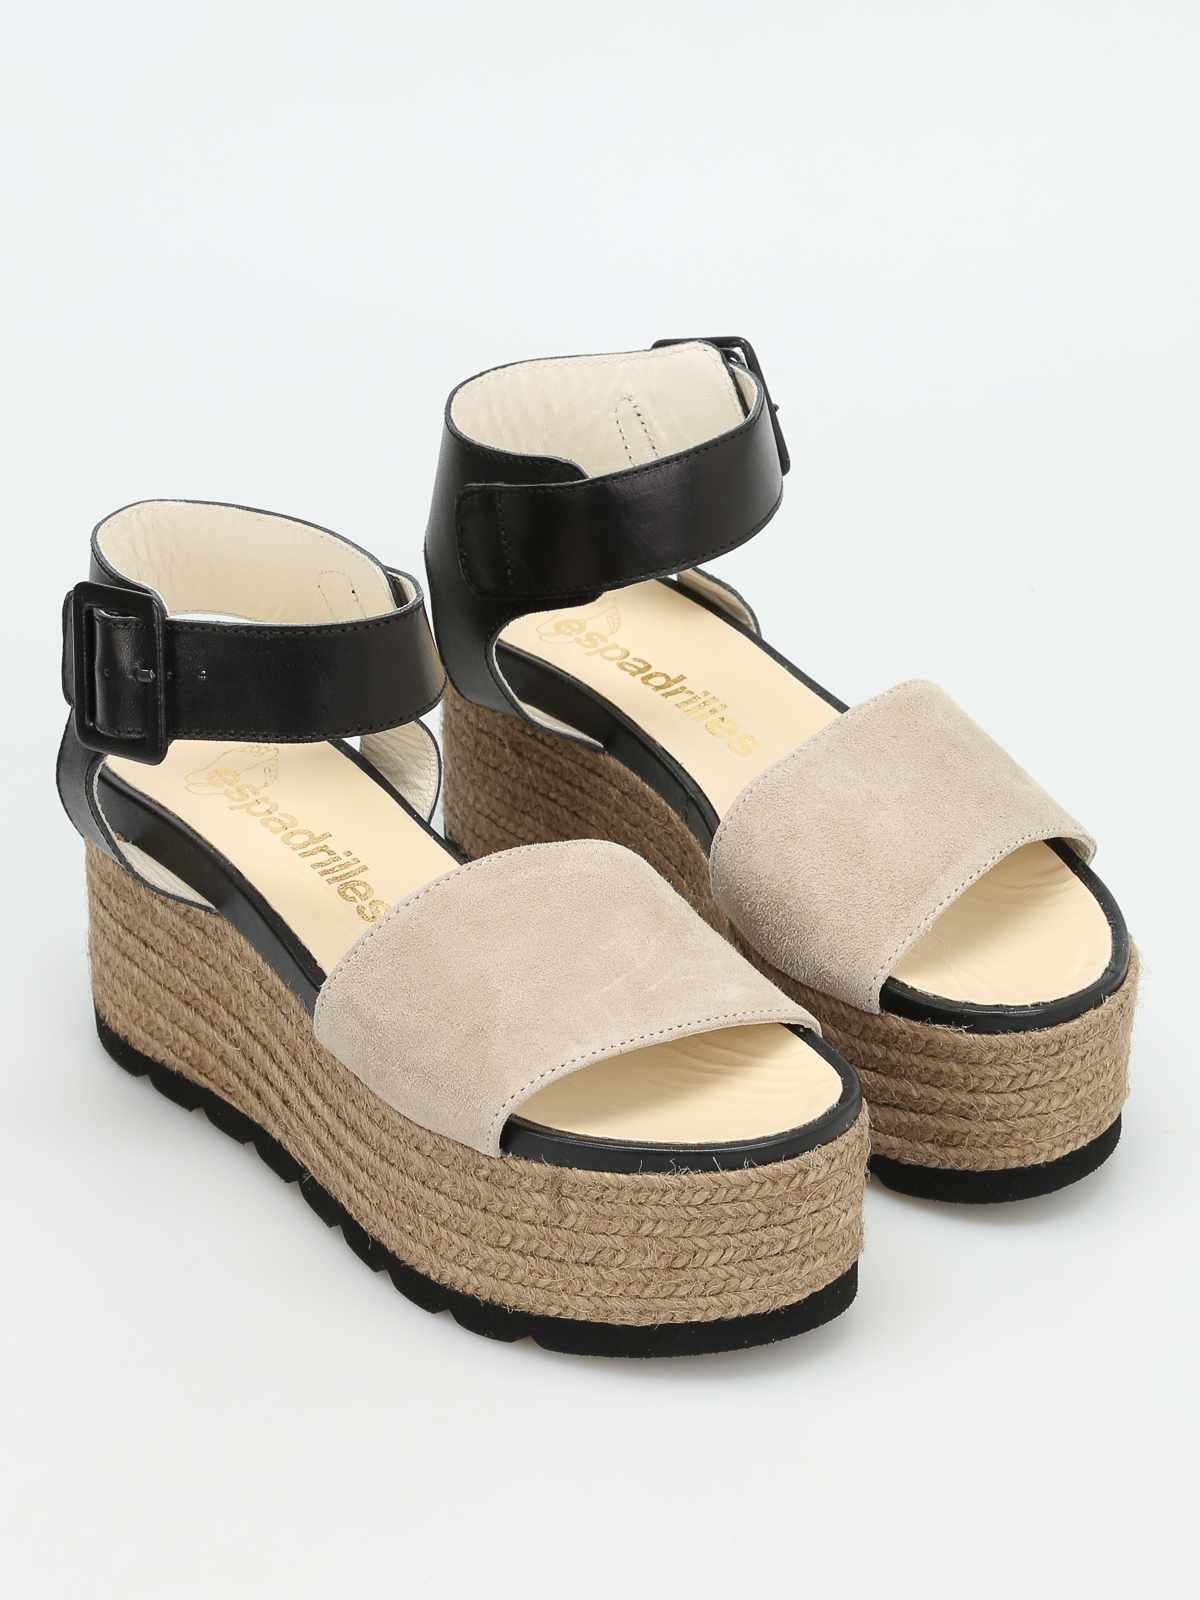 Espadrilles. Infuse fun into a shoe collection with espadrilles. This style of shoe is casual, yet sophisticated. With a fabric top and flexible bottom made of rope-like material, experience a .